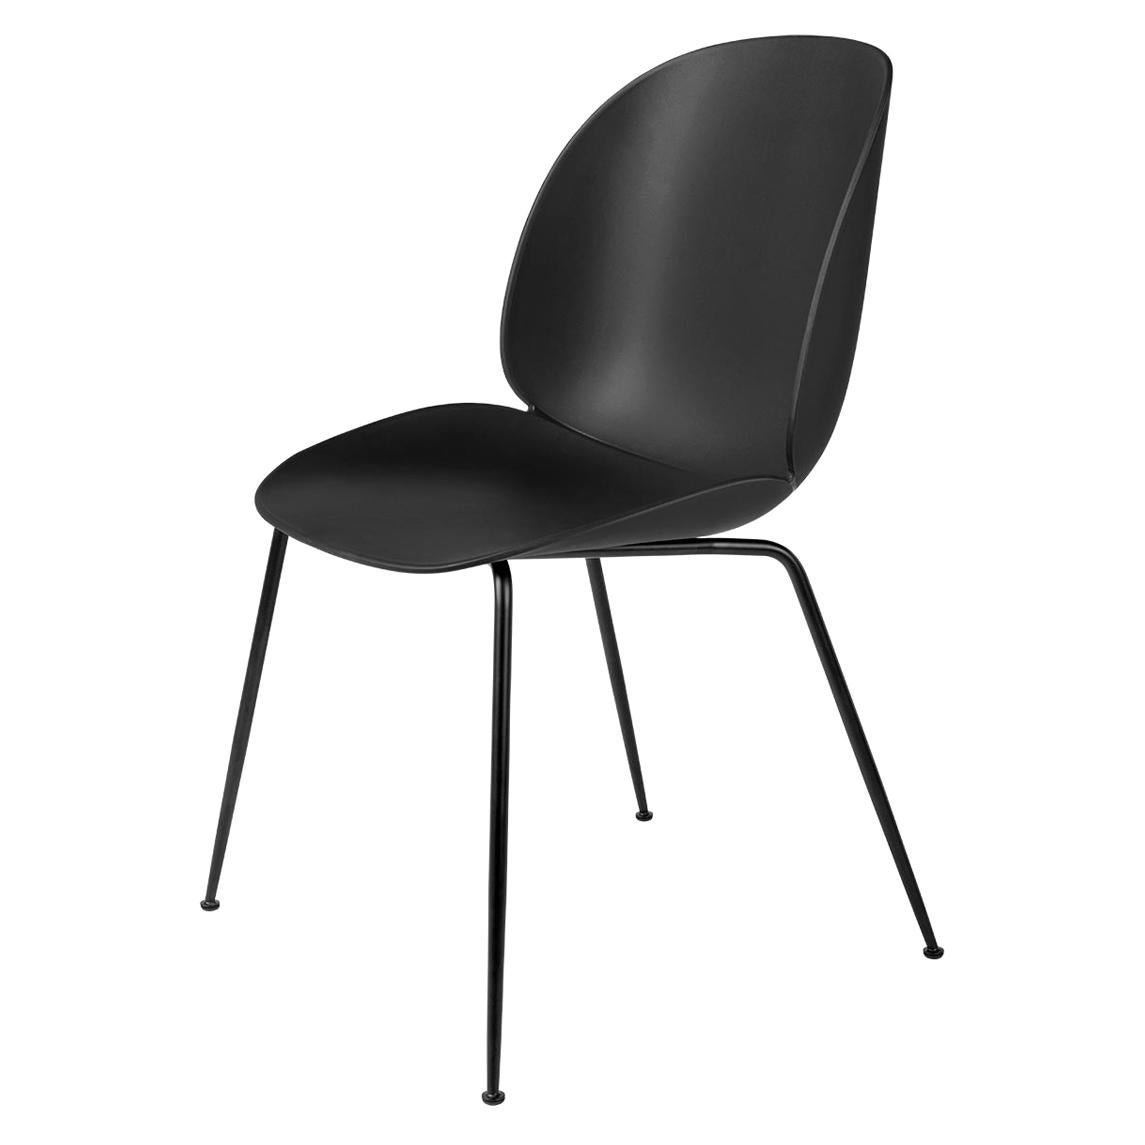 Beetle Dining Chair, Un-Upholstered, Conic Base, Matte Black